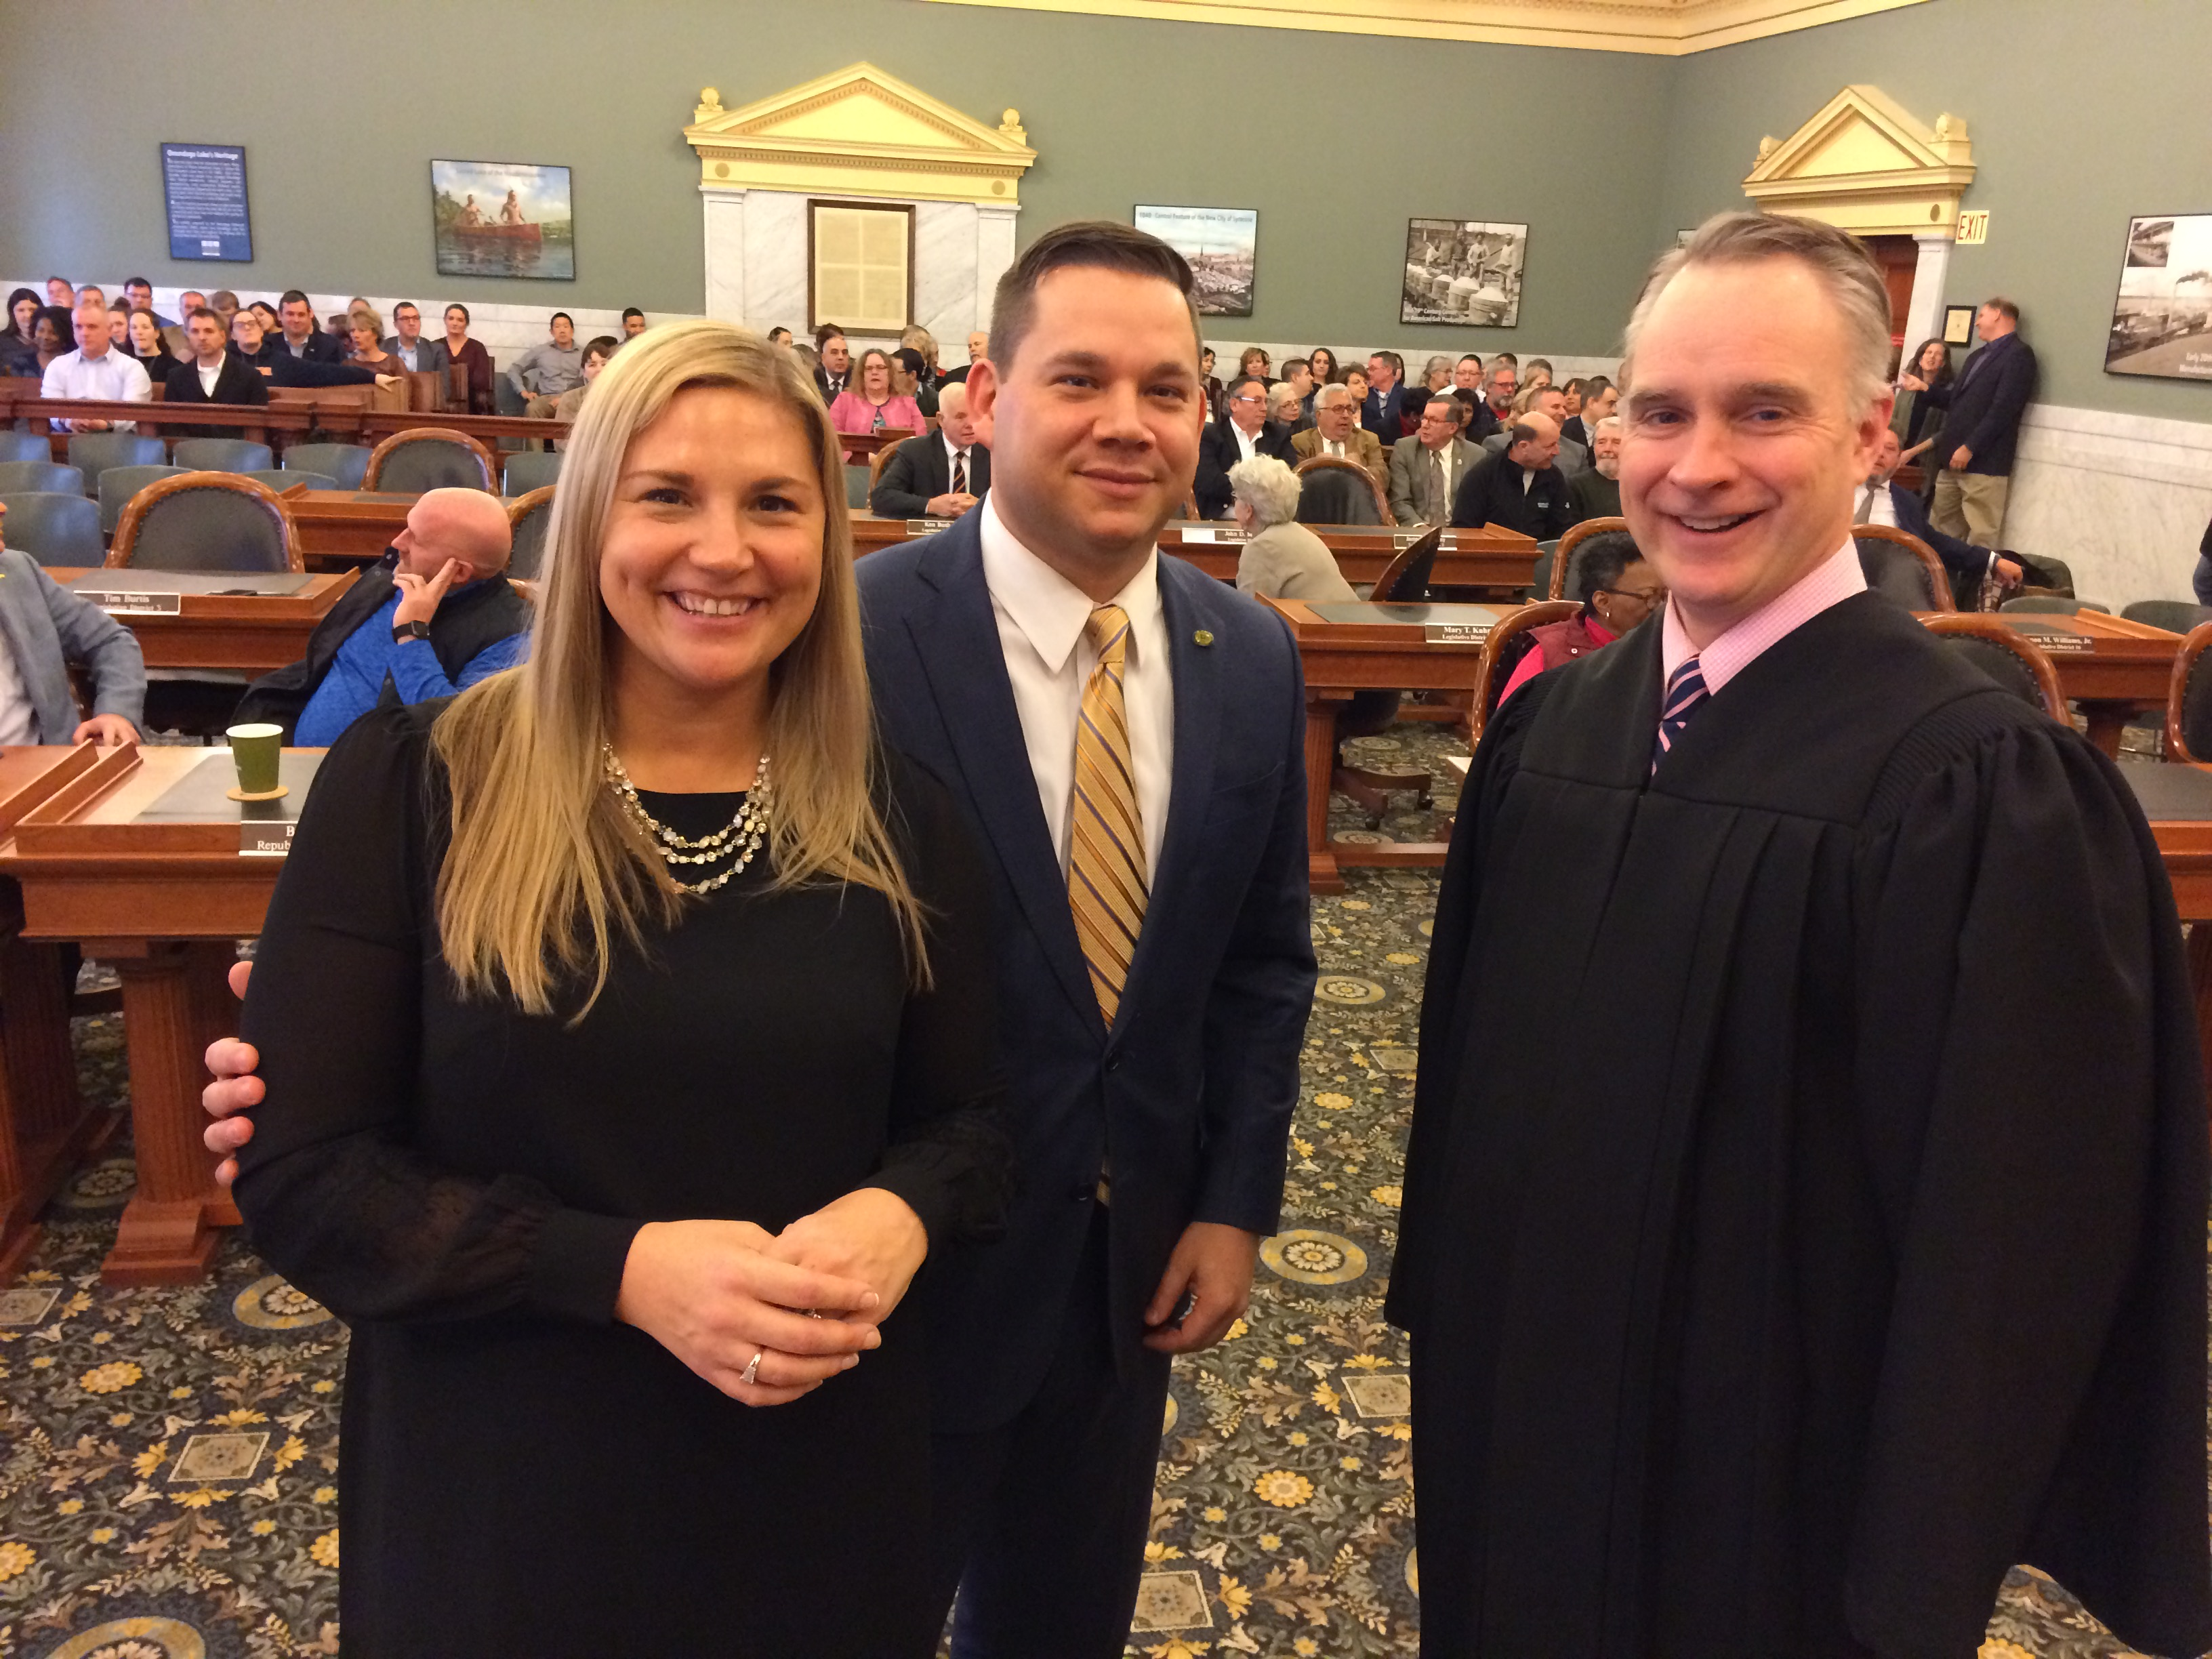 At formal swearing-in, McMahon promises collaboration will bring progress